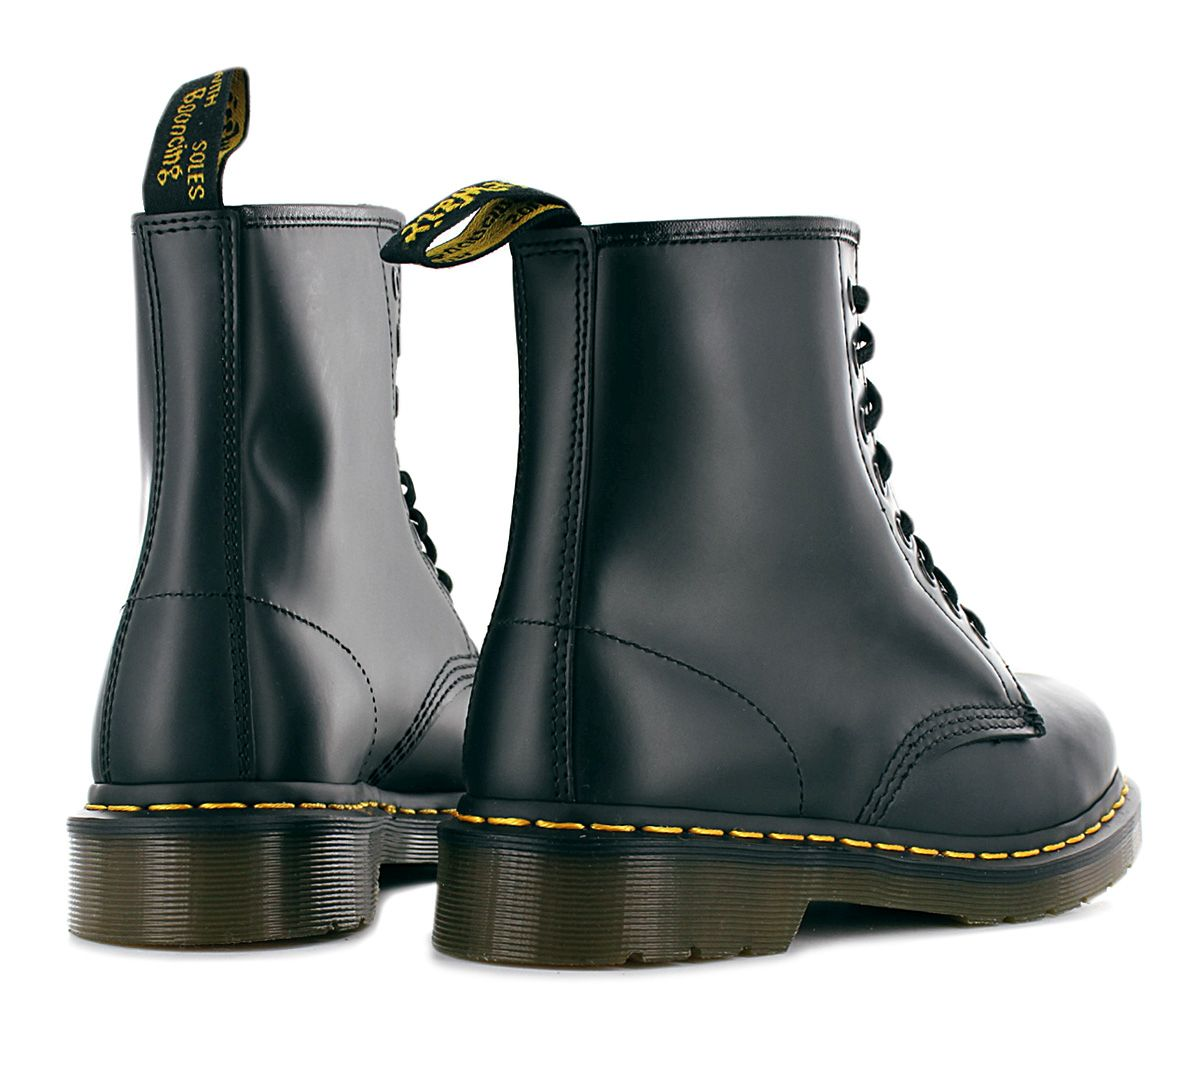 doc martens 1460 lisse doc bottes en cuir 8 trou bleu marine neuf 10072410 ebay. Black Bedroom Furniture Sets. Home Design Ideas